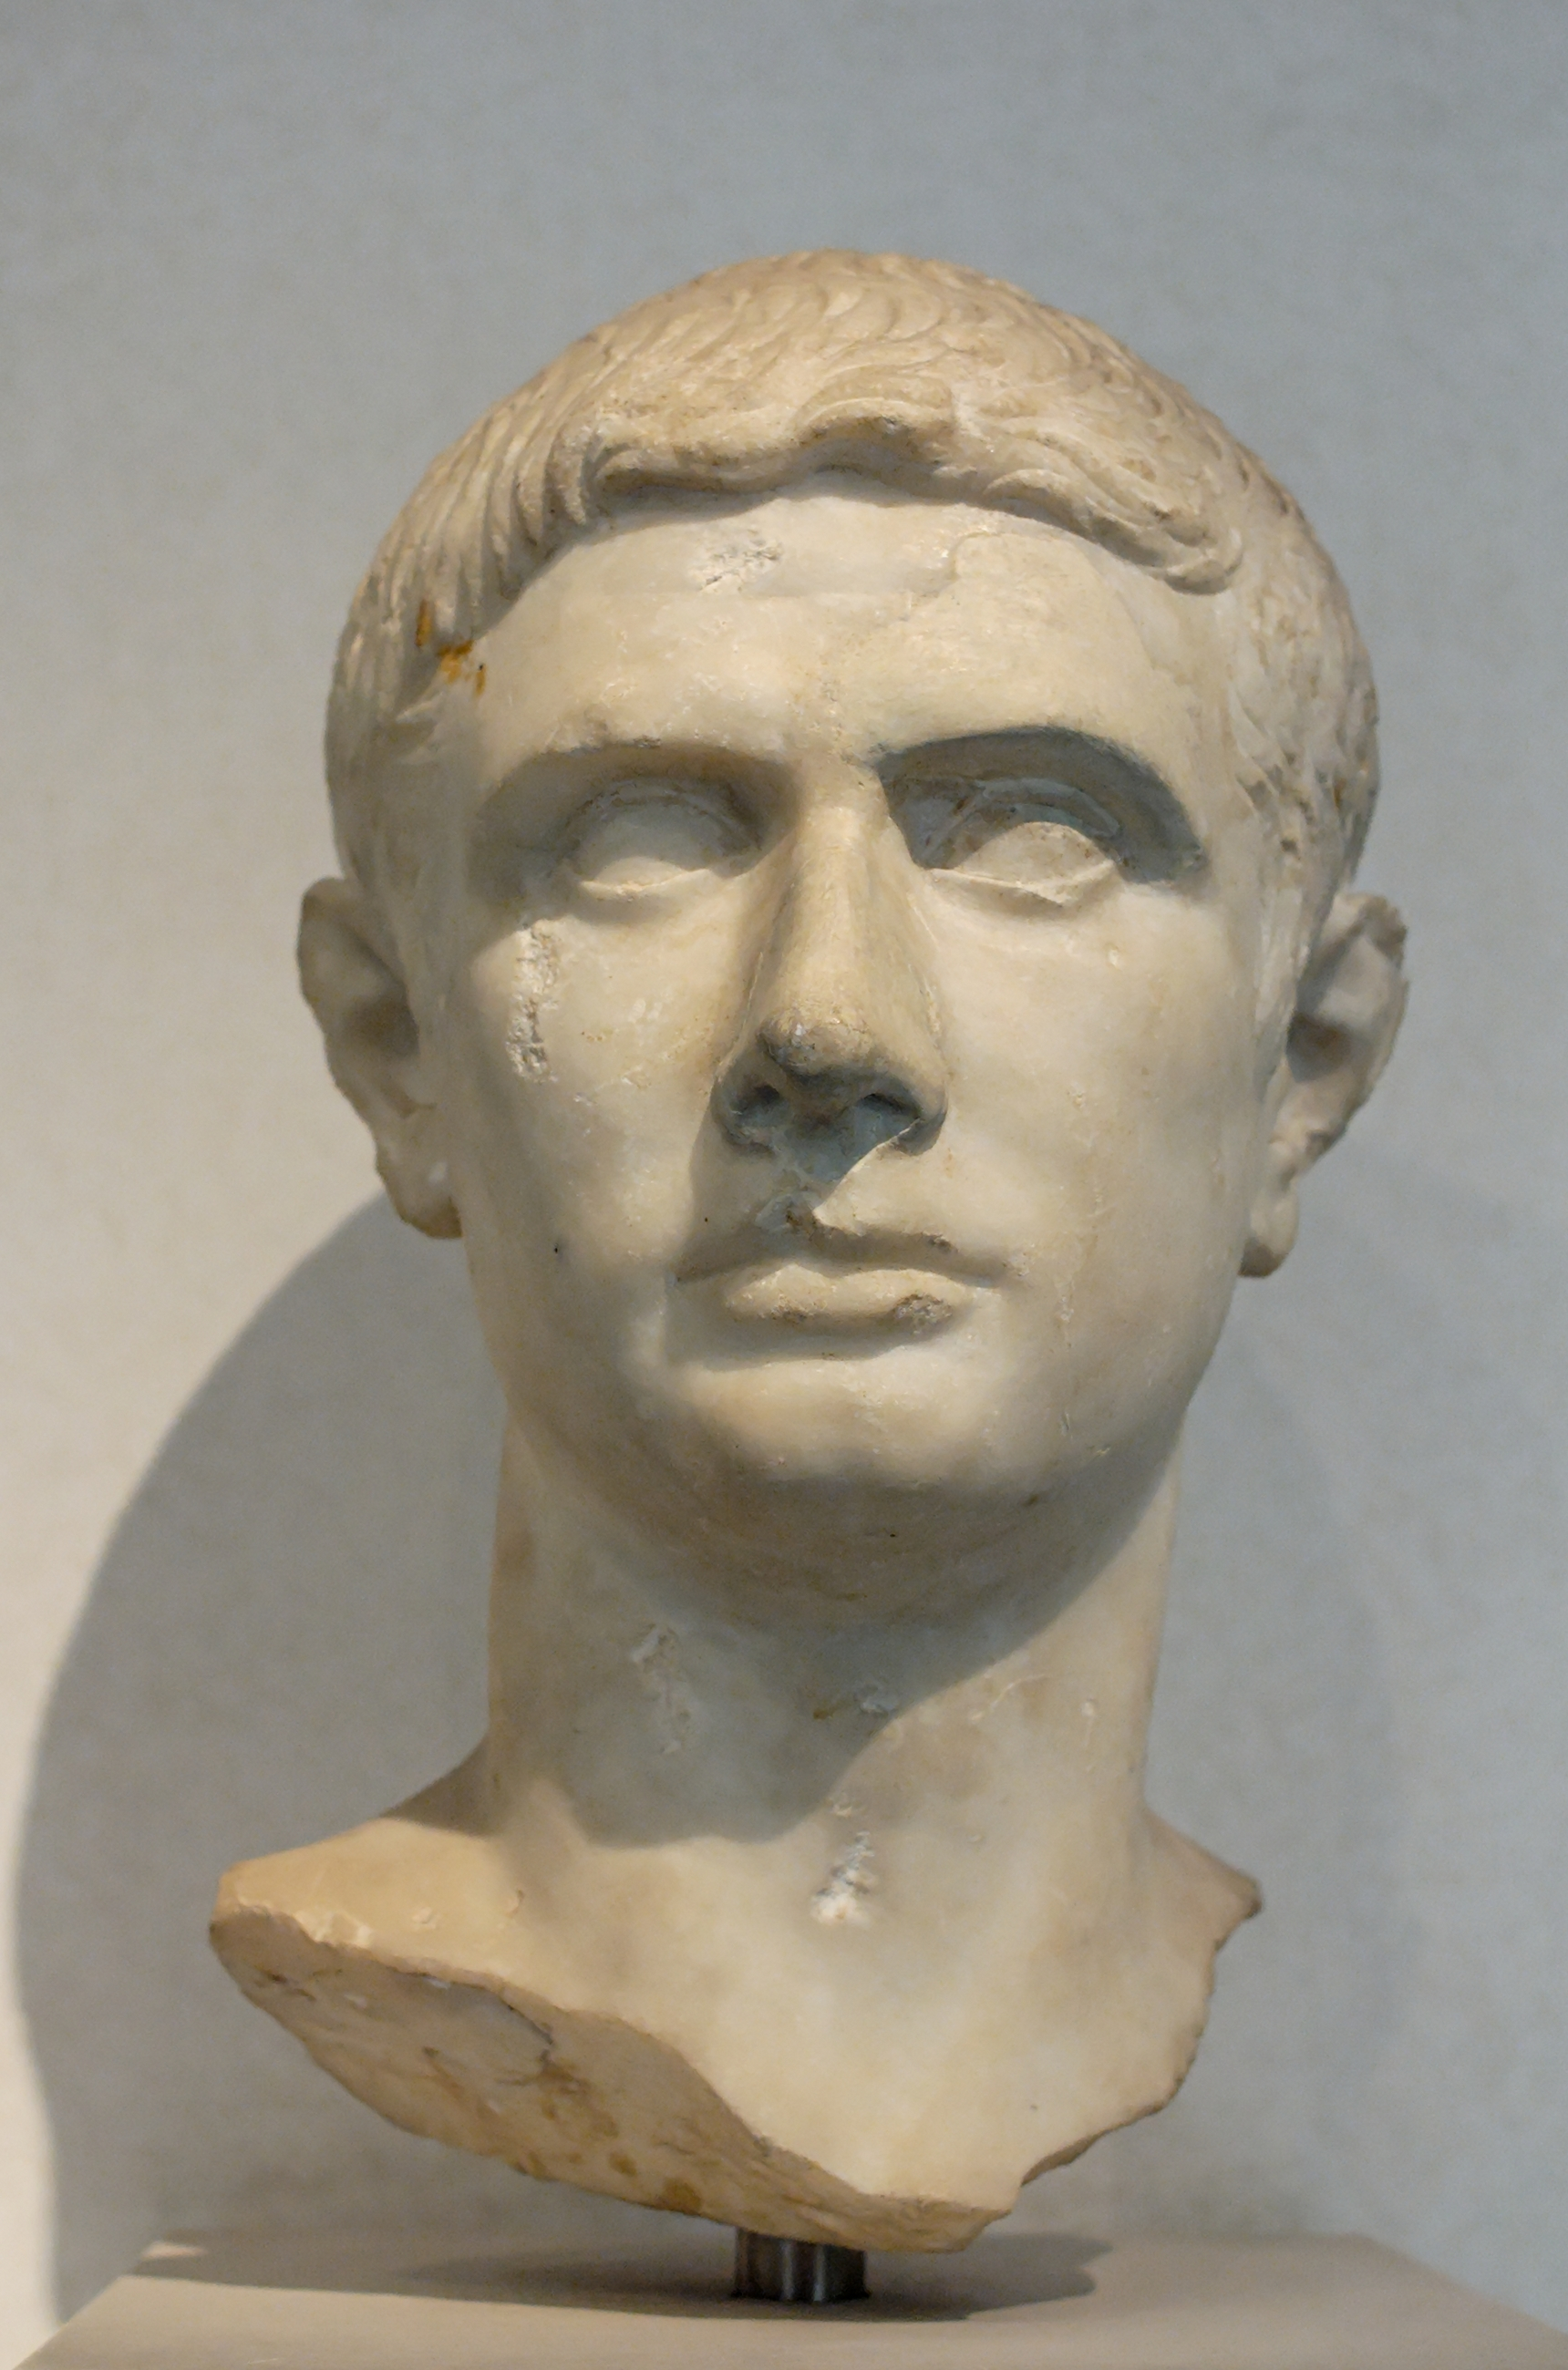 "julius caesar brutus cassius who is the better leader writework male portrait so called ""brutus"" marble r artwork 30"